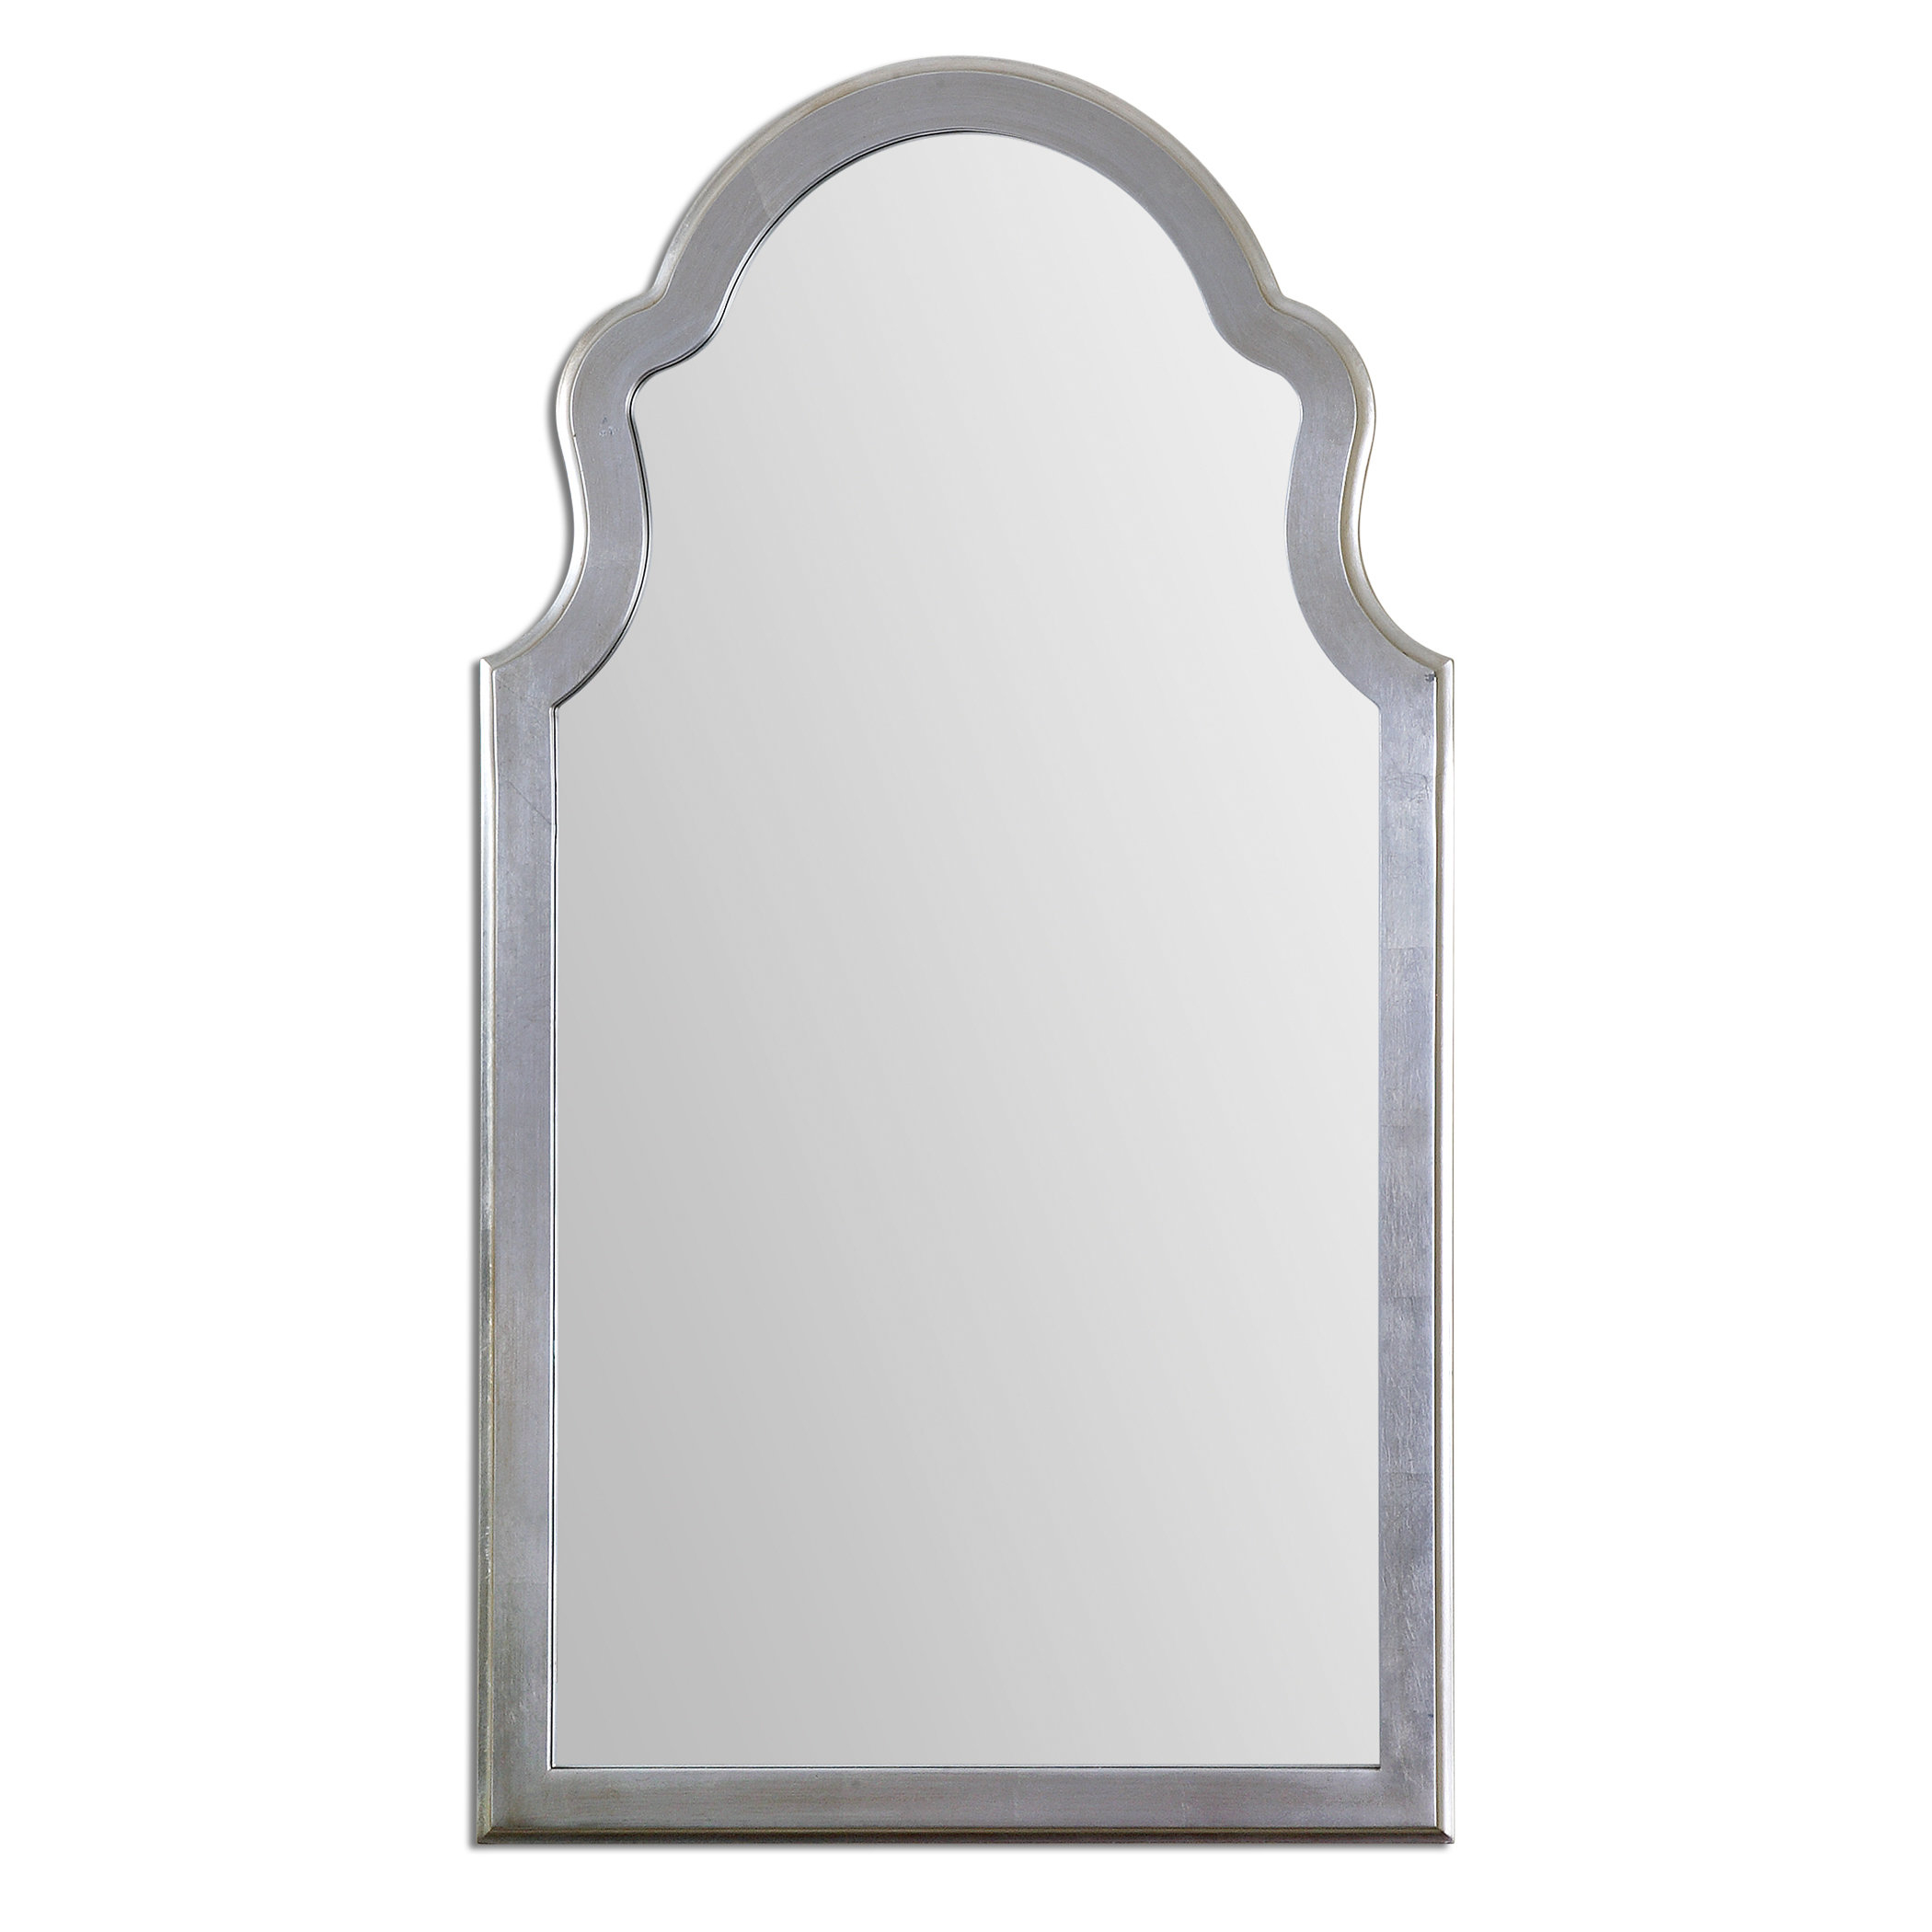 Farmhouse & Rustic Arch / Crowned Top Wall & Accent Mirrors In Dariel Tall Arched Scalloped Wall Mirrors (View 14 of 20)